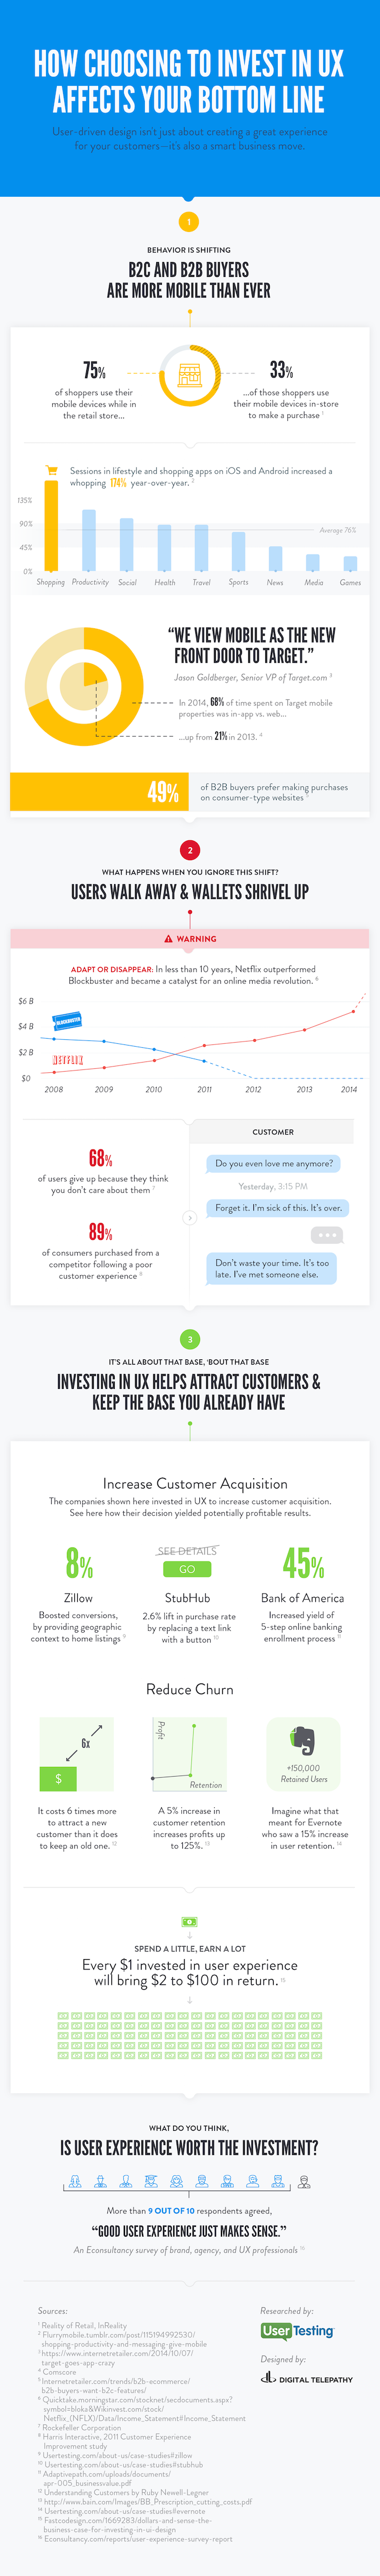 How Choosing To Invest in UX Affects Your Bottom Line #Infographic